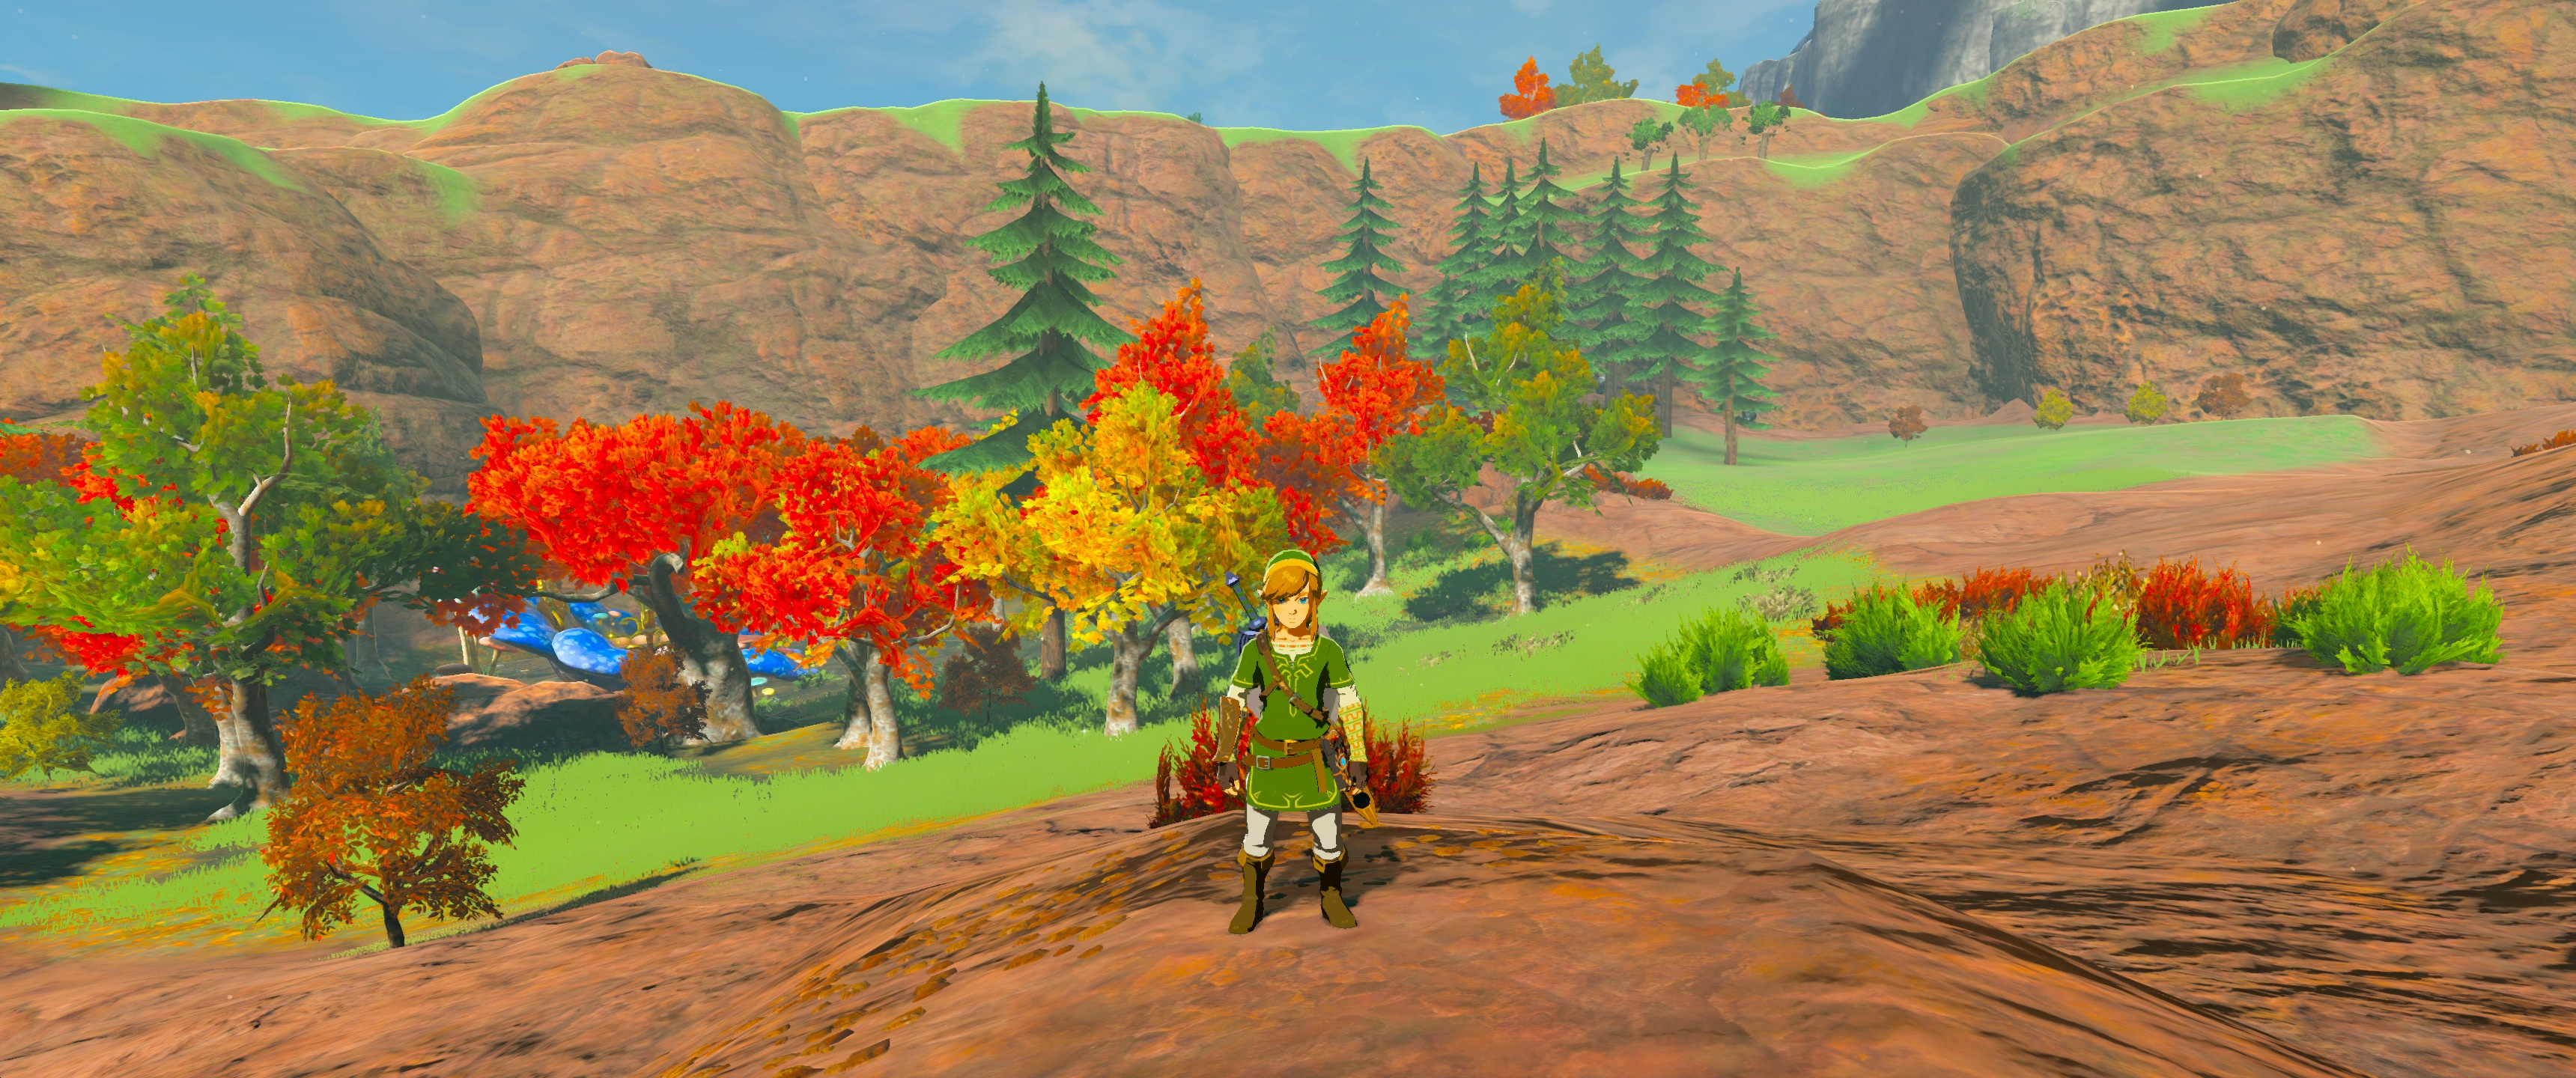 Legend of zelda breath of the wild pc download cemu | The